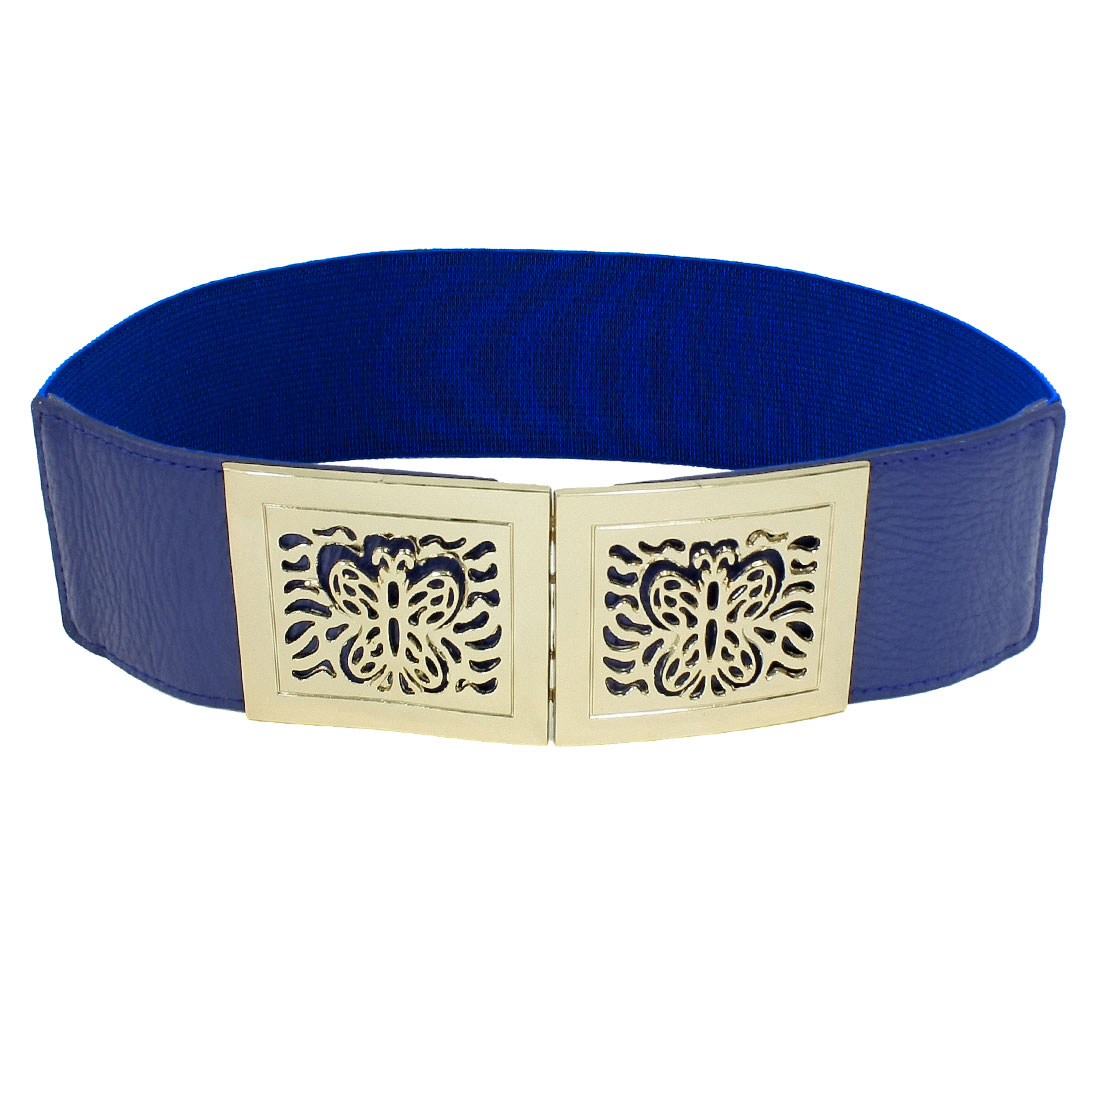 Hollow Out Butterfly Interlocking Buckle Elastic Waist Band Blue for Ladies